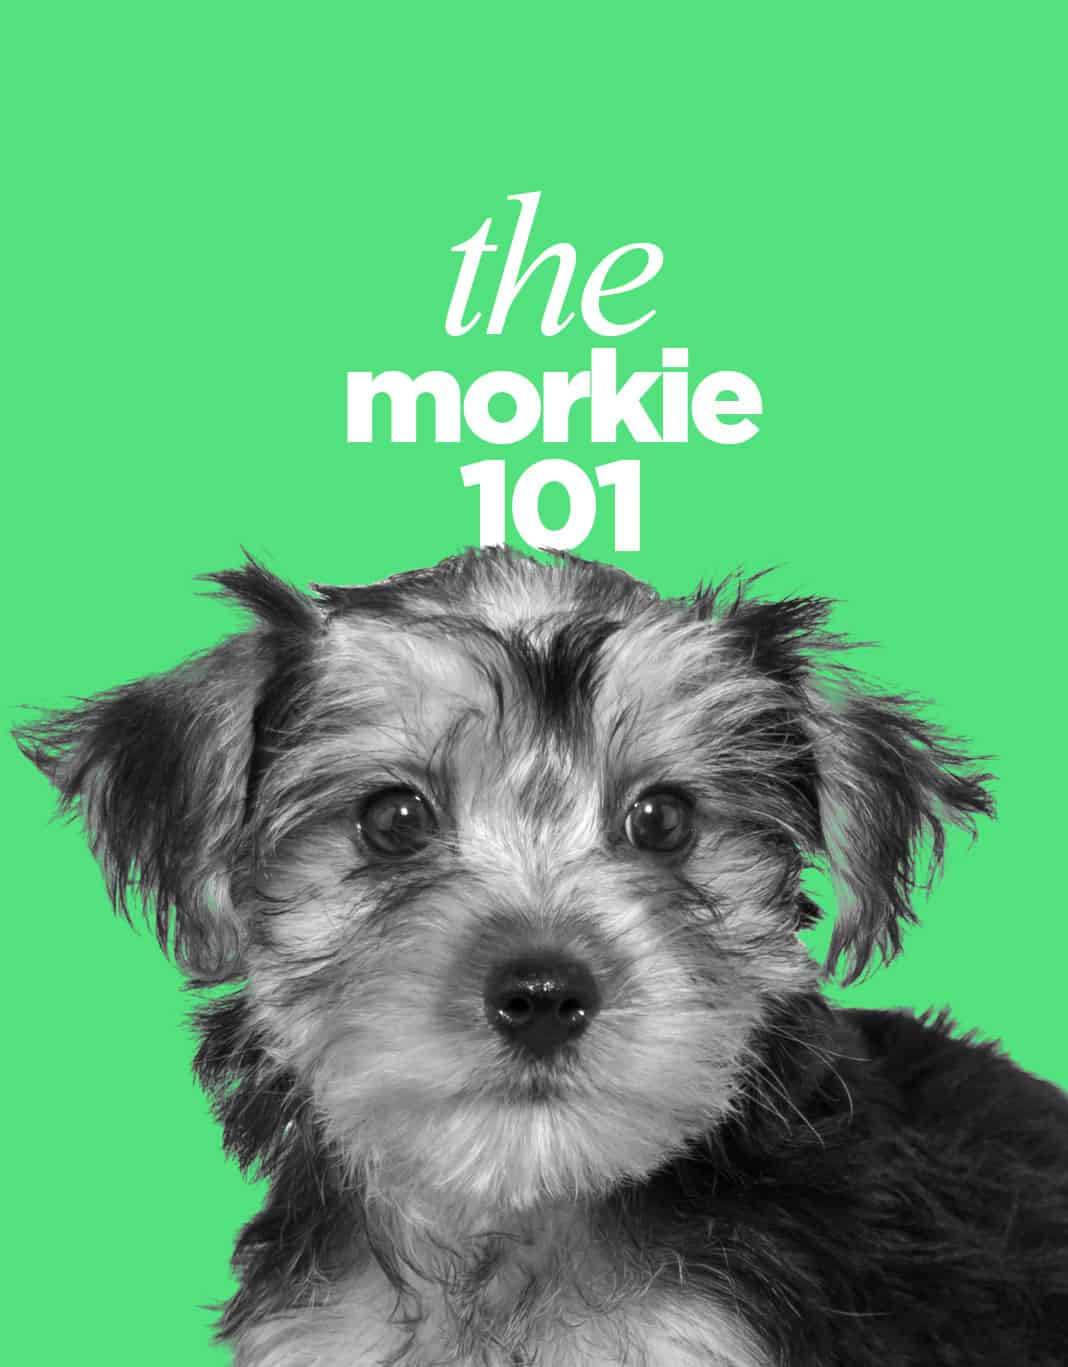 The Morkie Dogs 101 - Everything About Morkie Dogs